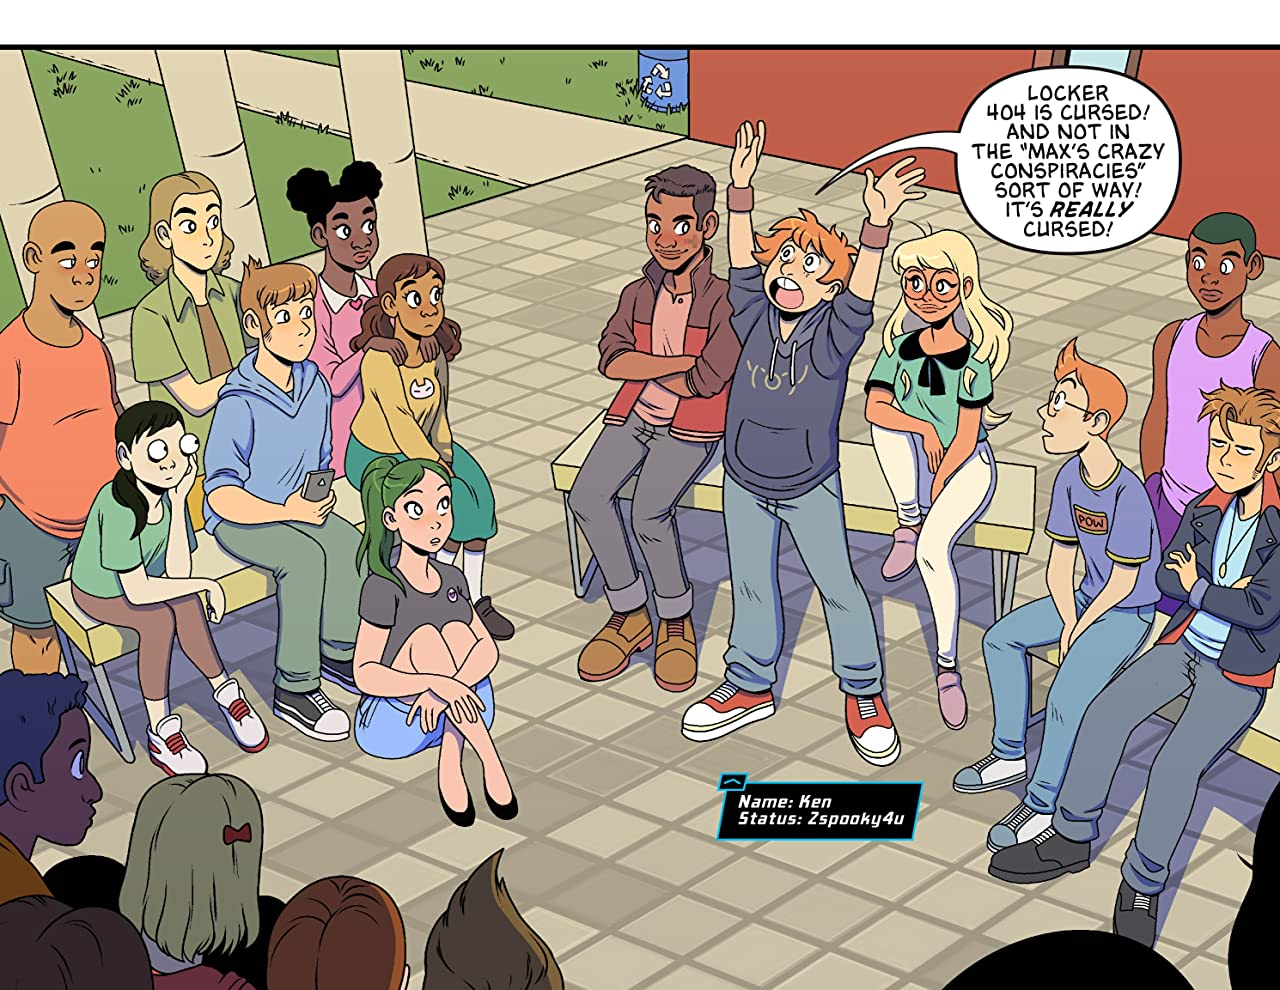 Uncanny Valley High #4